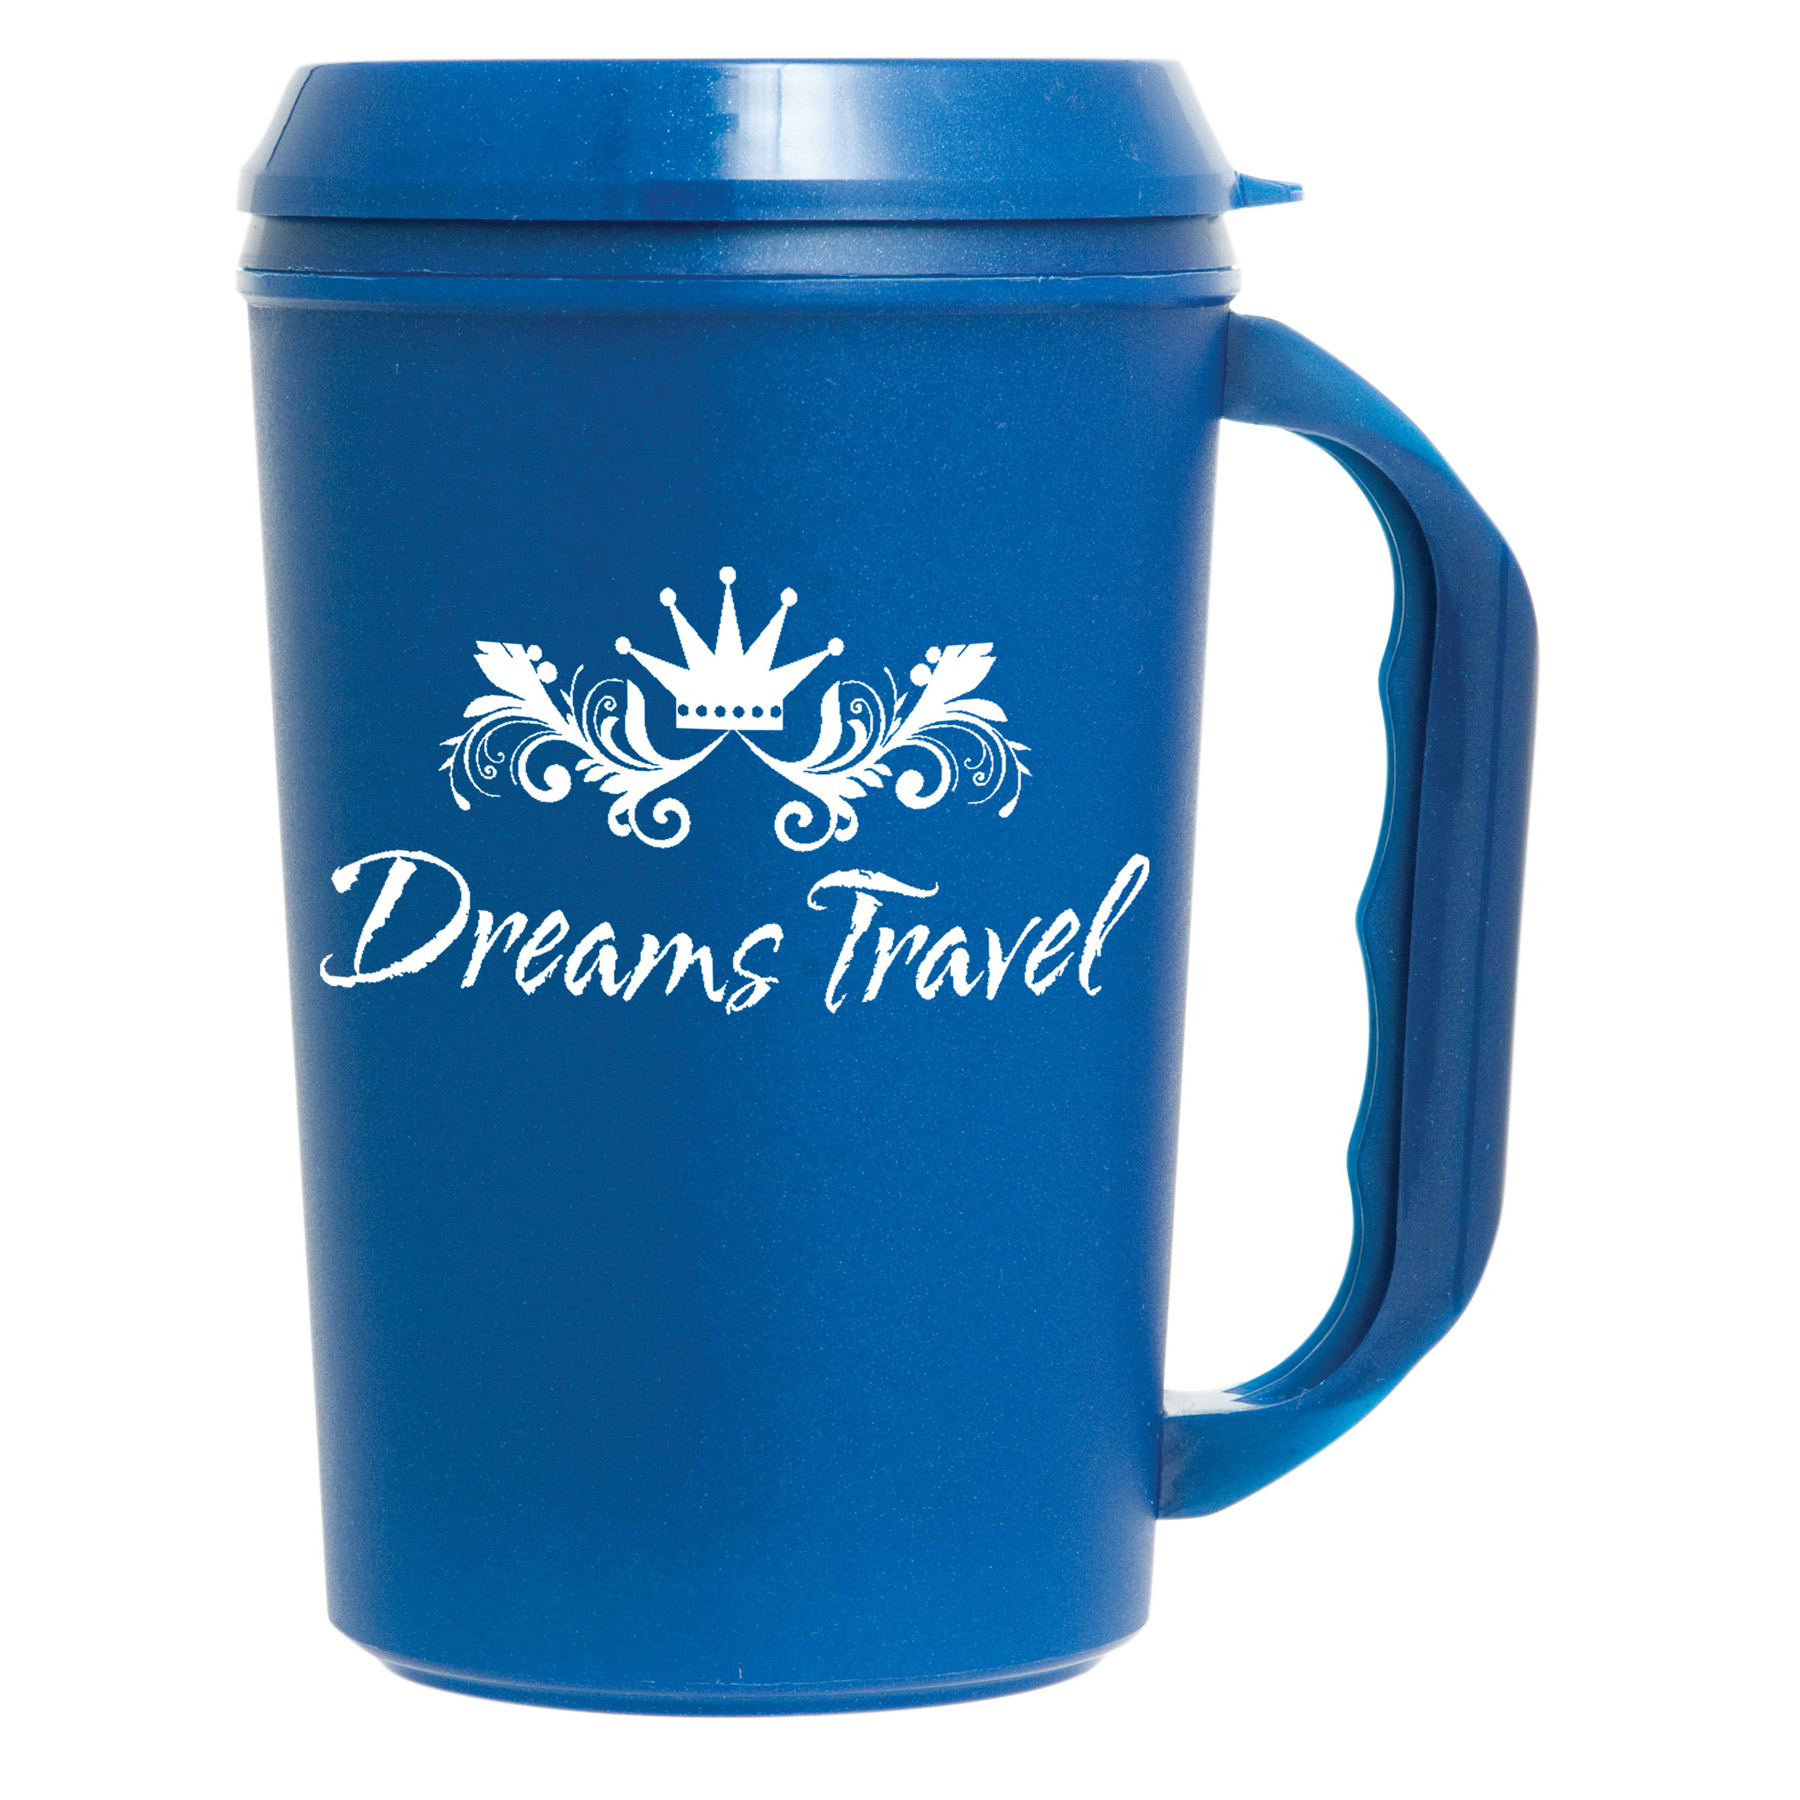 22 Oz. Insulated Travel Mug w/ Drink Thru Lid, 600-K, One Colour Imprint